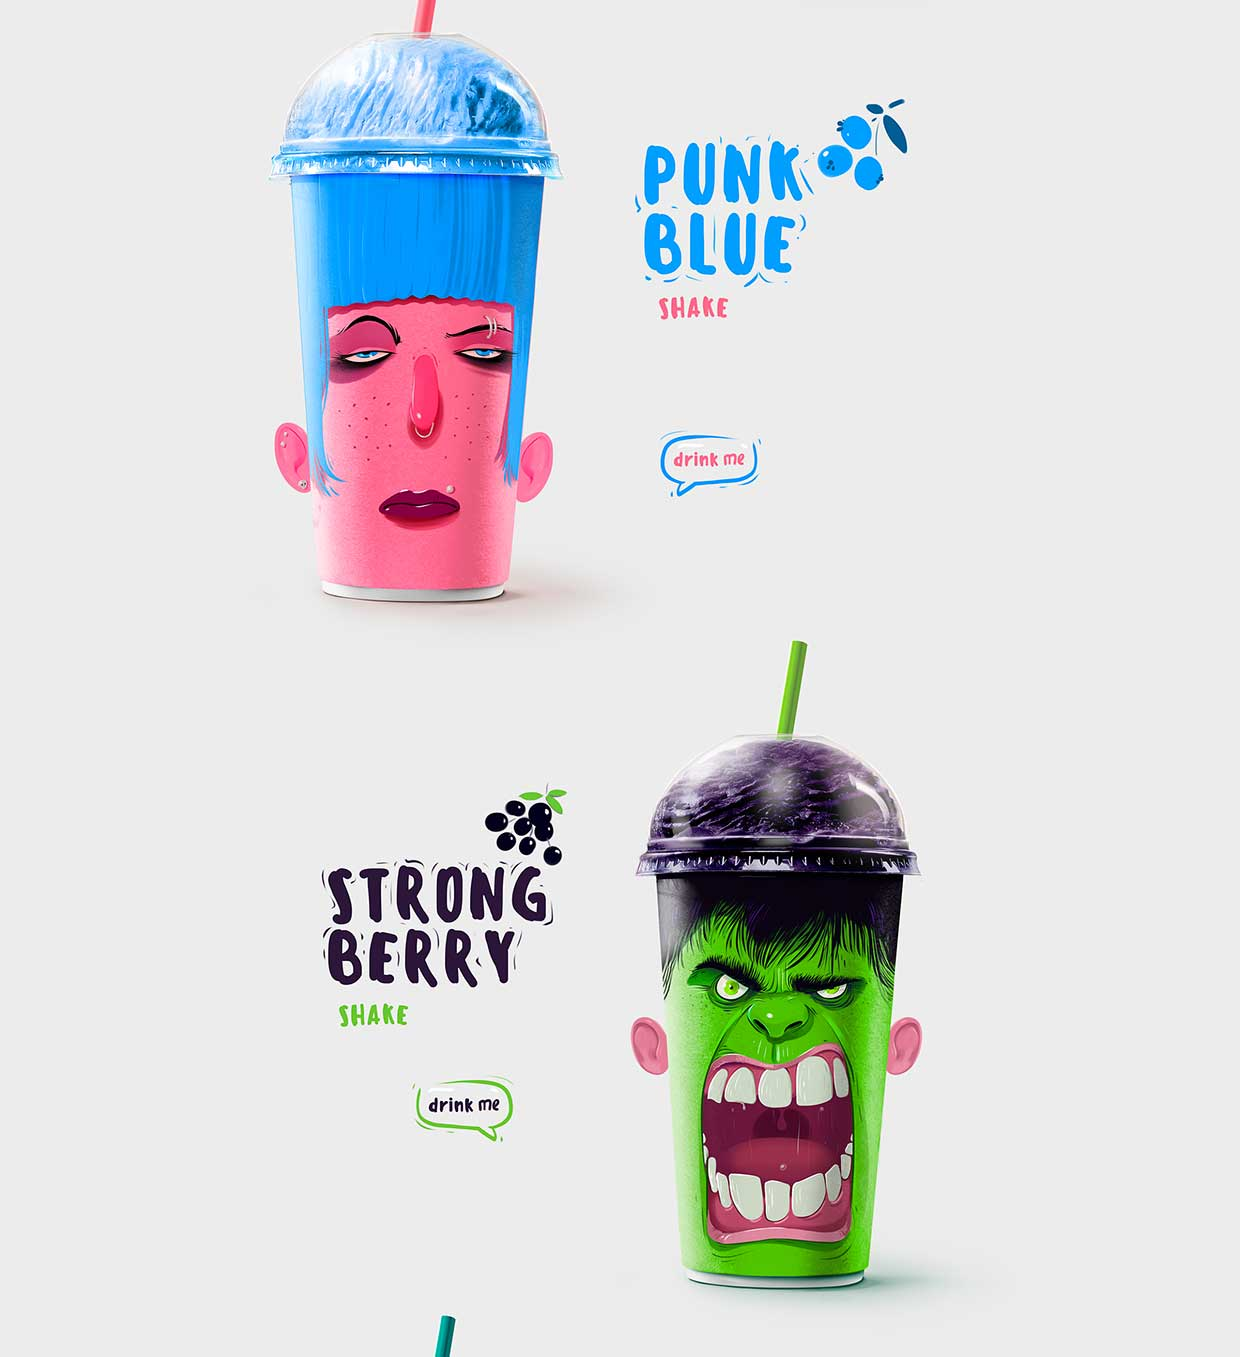 Shake my head: quando il packaging è fuori di testa